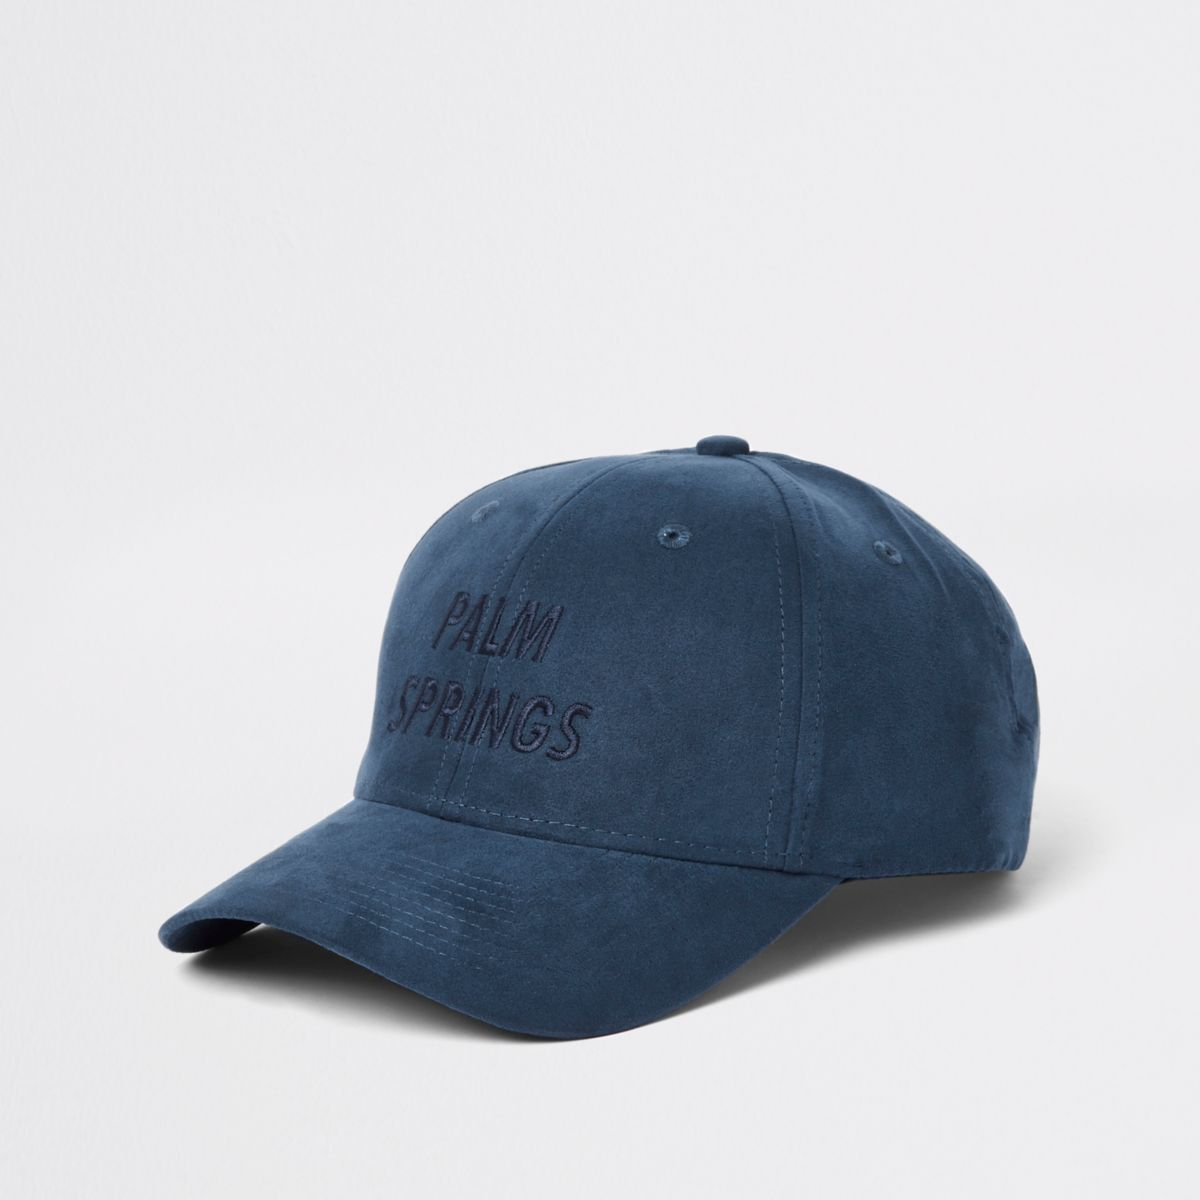 Blue 'palm springs' embroided baseball cap